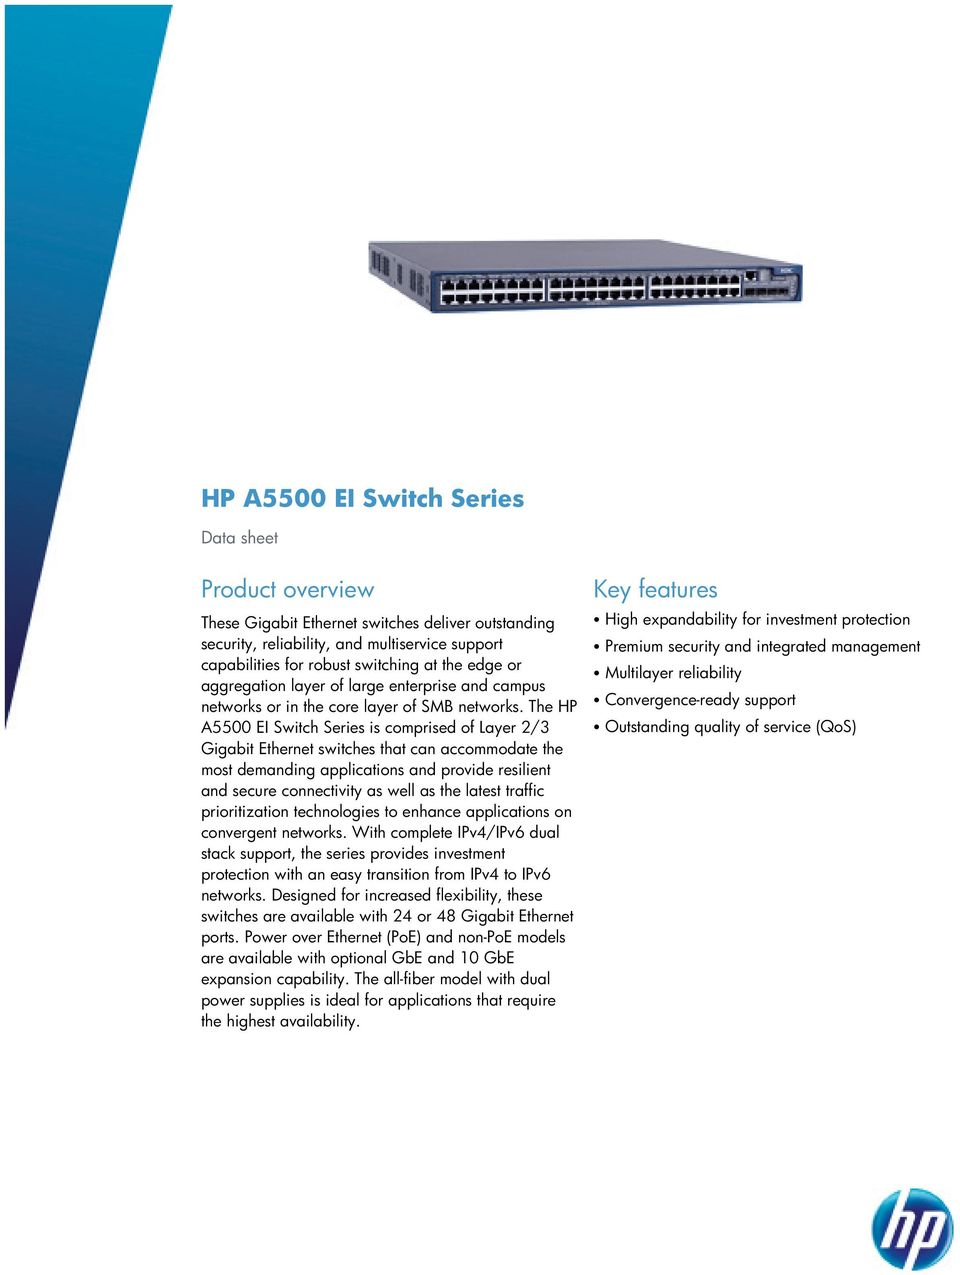 The HP A5500 EI Switch Series is comprised of Layer 2/3 Gigabit Ethernet switches that can accommodate the most demanding applications and provide resilient and secure connectivity as well as the